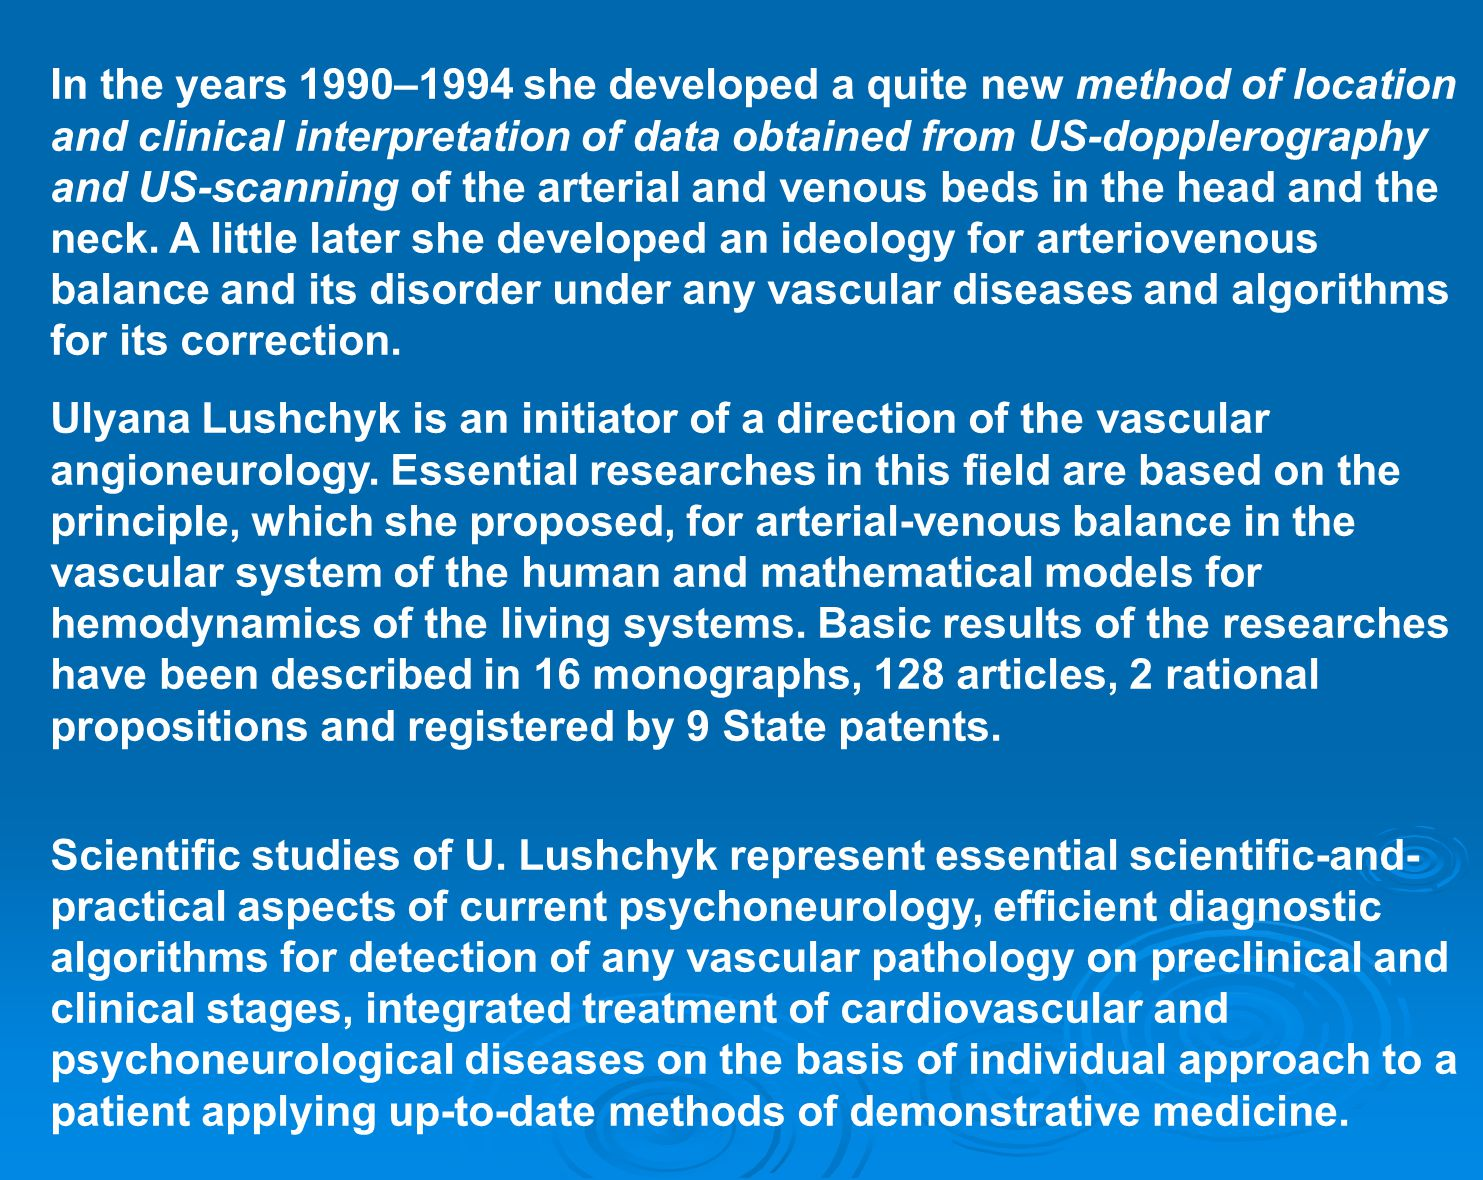 In the years 1990–1994 she developed a quite new method of location and clinical interpretation of data obtained from US-dopplerography and US-scanning of the arterial and venous beds in the head and the neck.